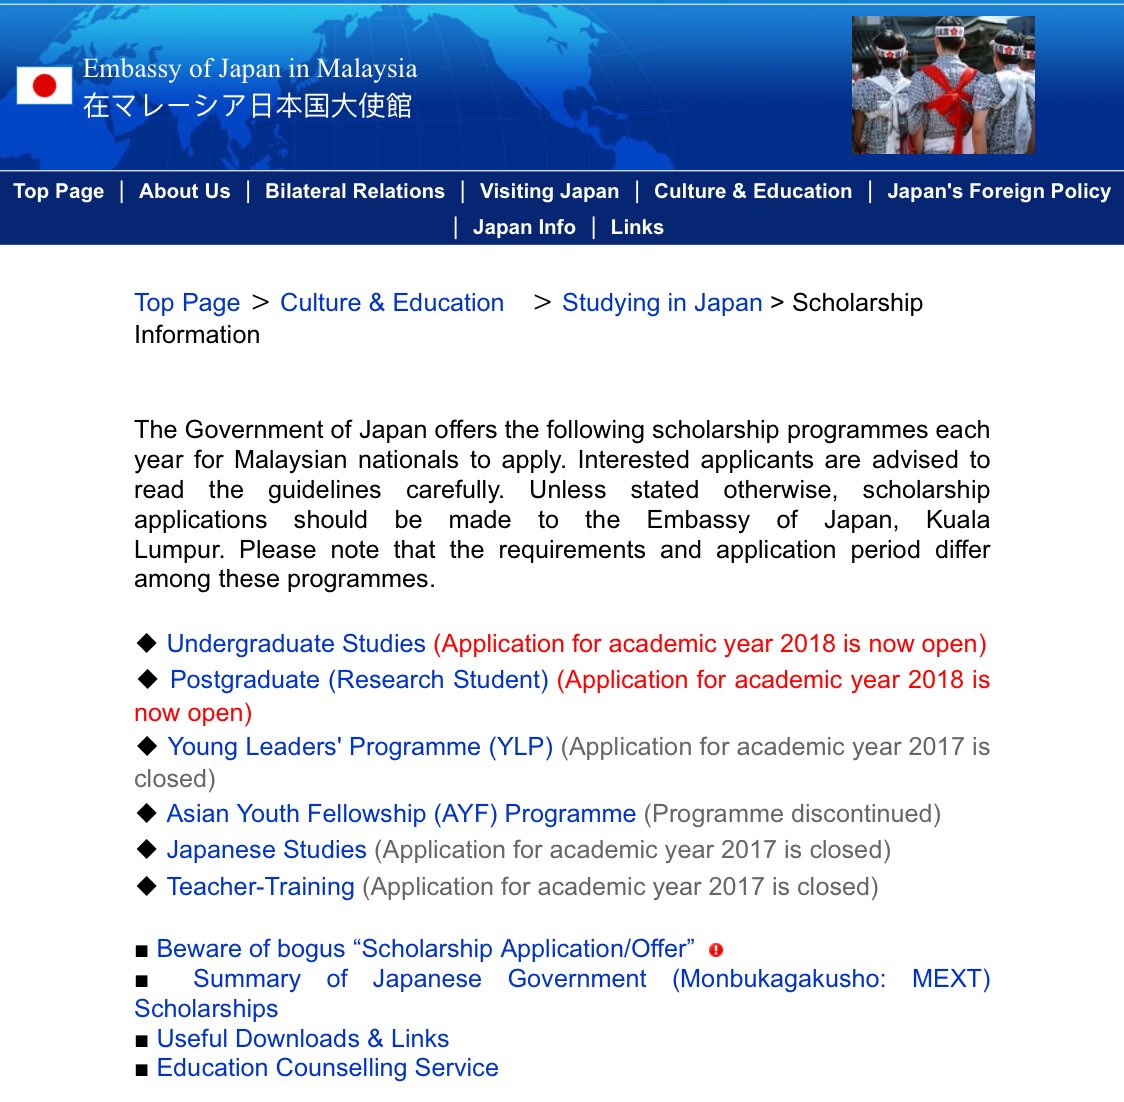 E Z R A L On Twitter Japanese Gov Mext Scholarship For Academic Year 2018 Is Now Open For Application Https T Co 1tro1afug6 Rt And Spread The Love Https T Co Rpcwteccne